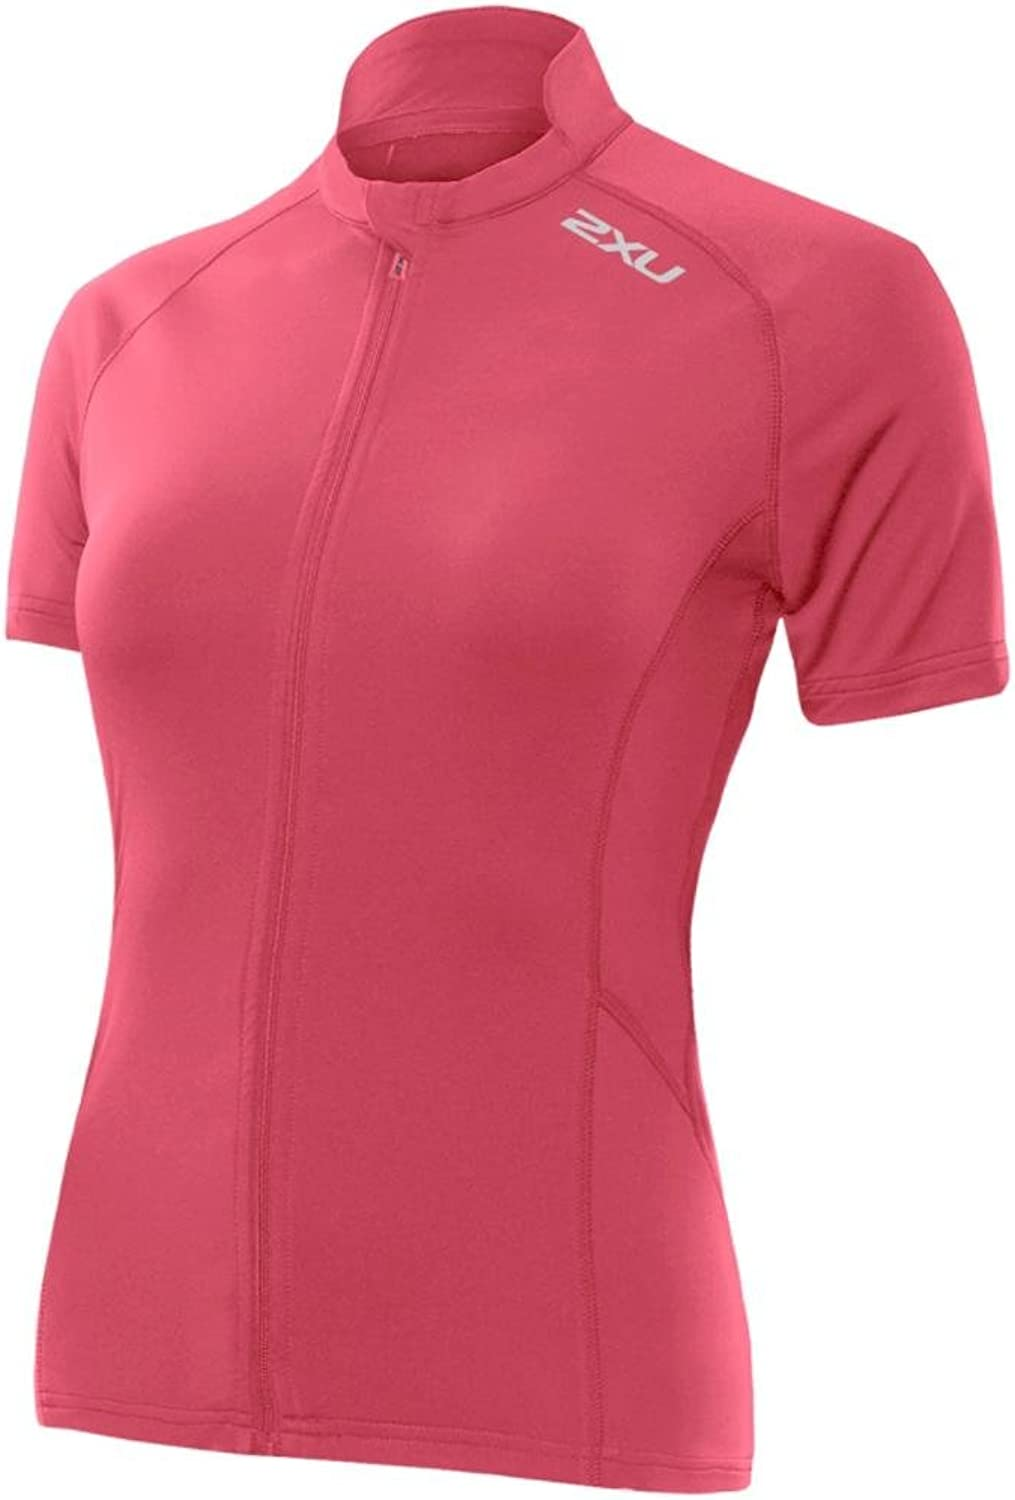 2XU Women's Thermo Short Sleeve Jersey